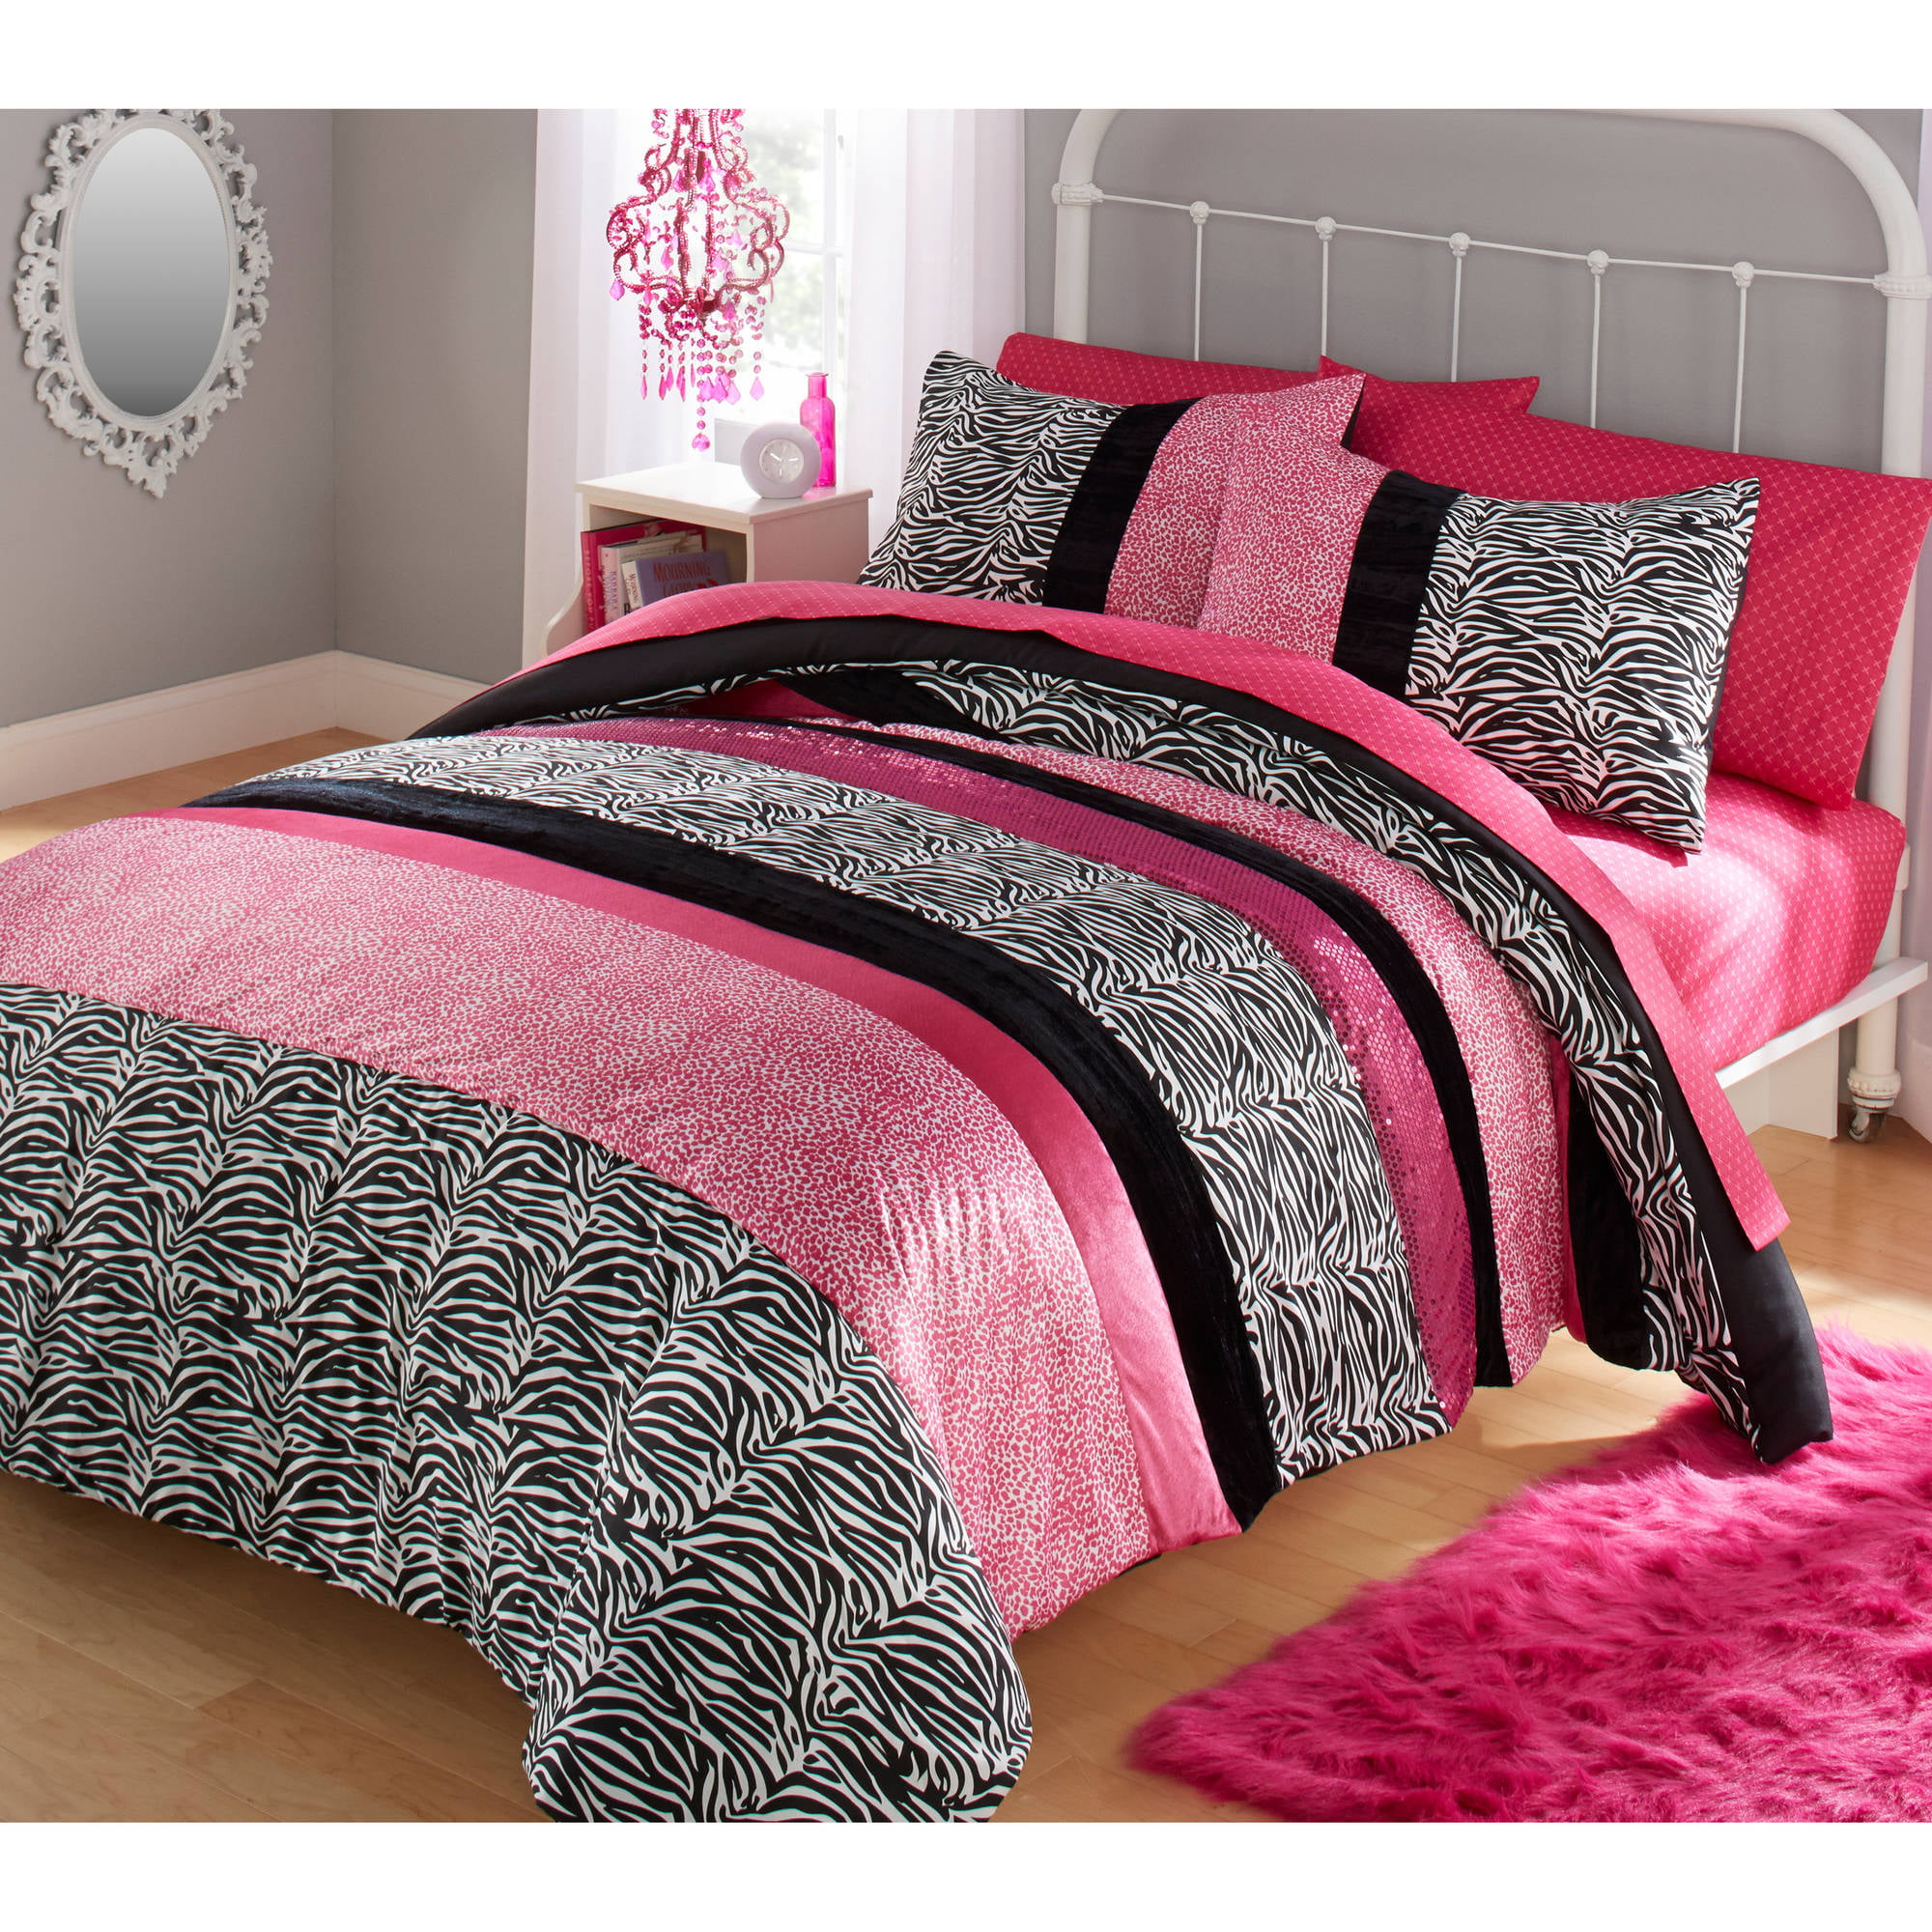 Animal print bedroom sets - Animal Print Bedroom Sets 13